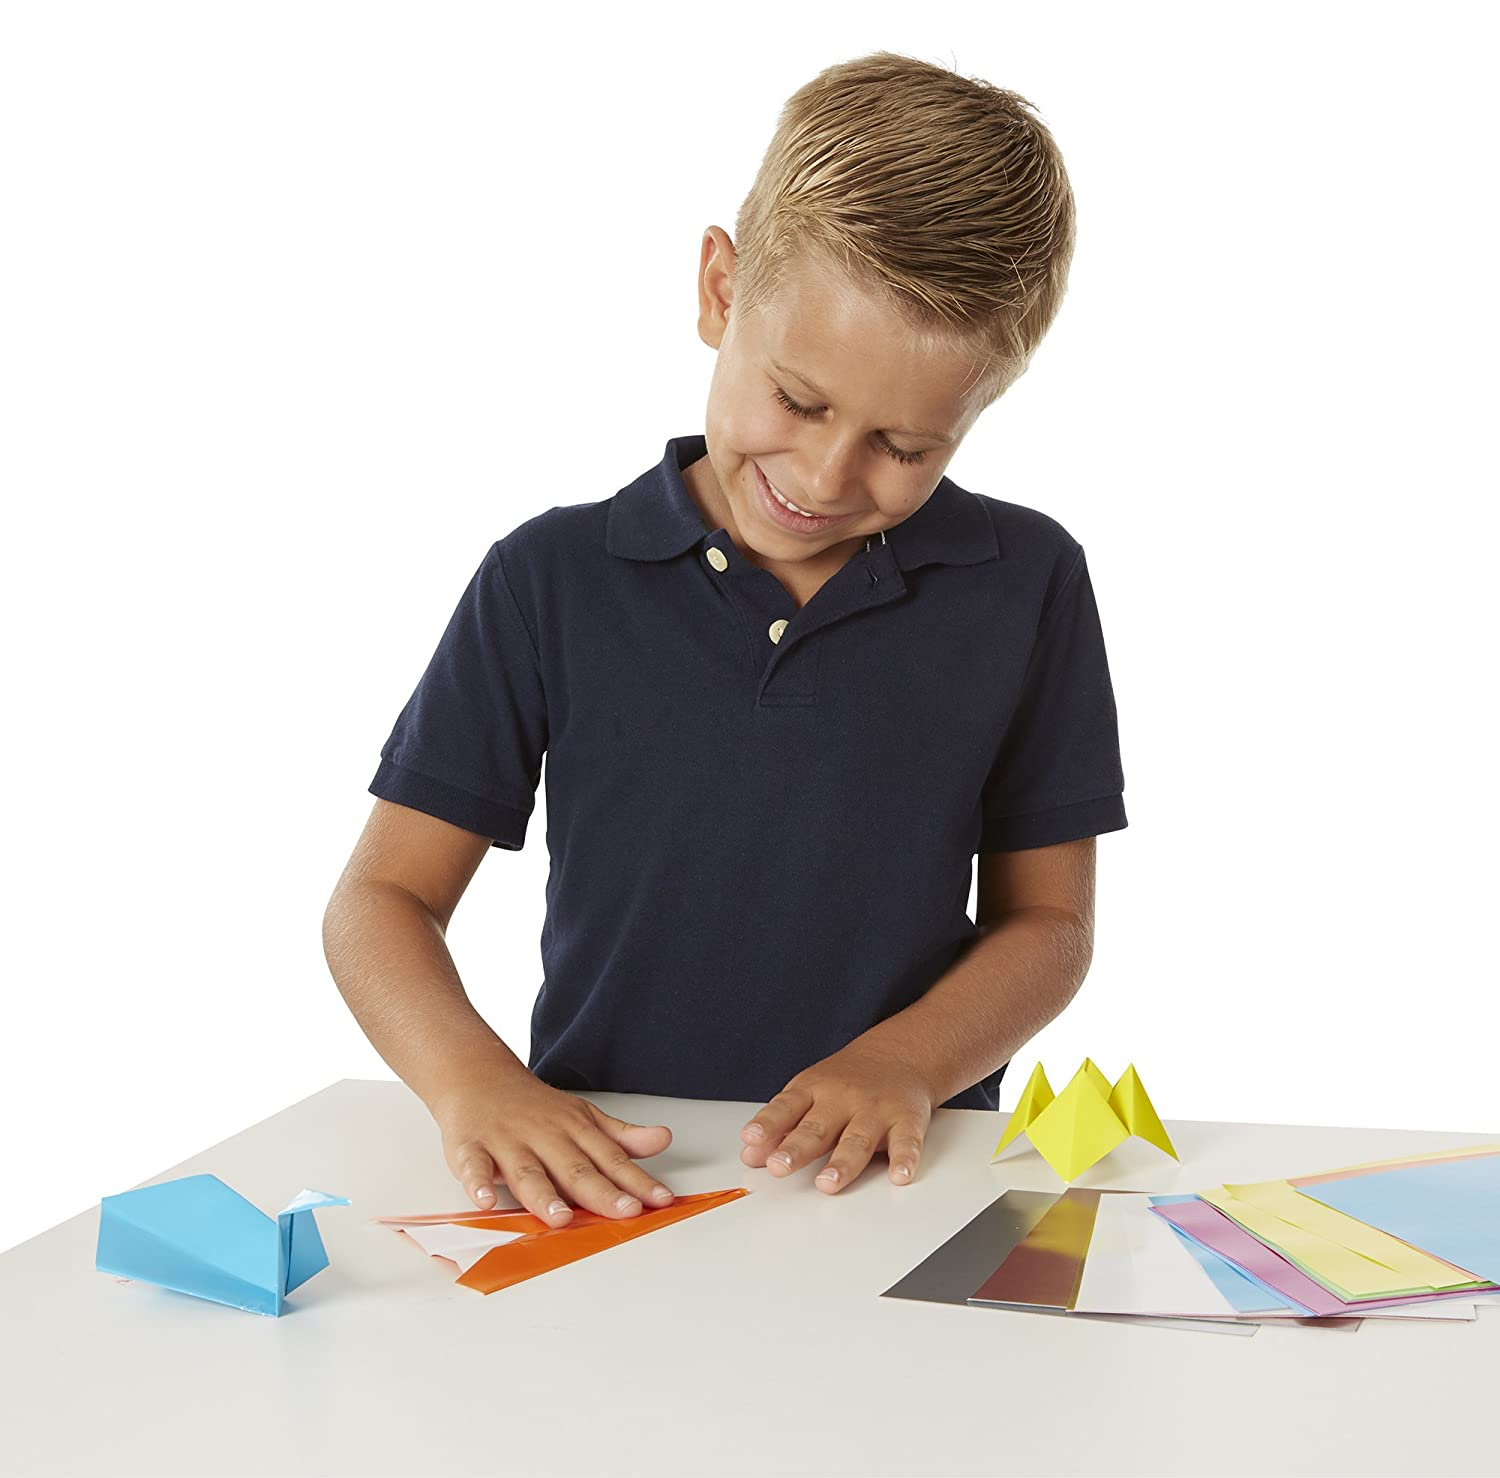 6 inches x 6 inches With 51 Sheets Melissa /& Doug Origami Paper